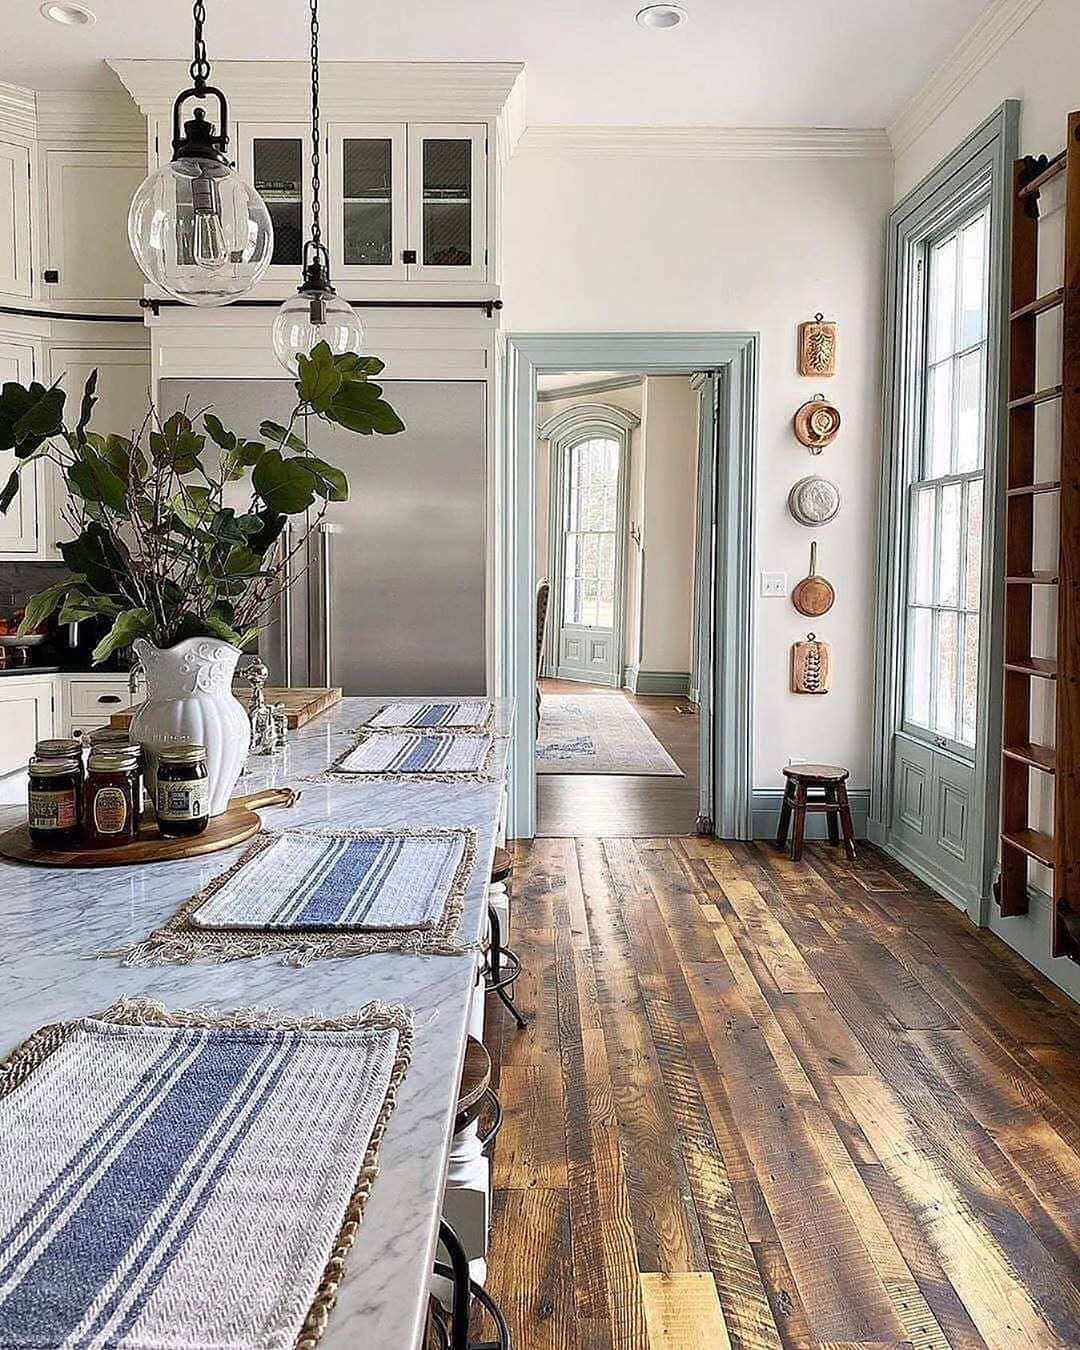 Farmhouse Fanatics Farmhousefanatics Posted On Instagram Isn T This Farmhousestyle Home Just Stunning Atashl In 2020 Neutral Decor Farmhouse Style Decor